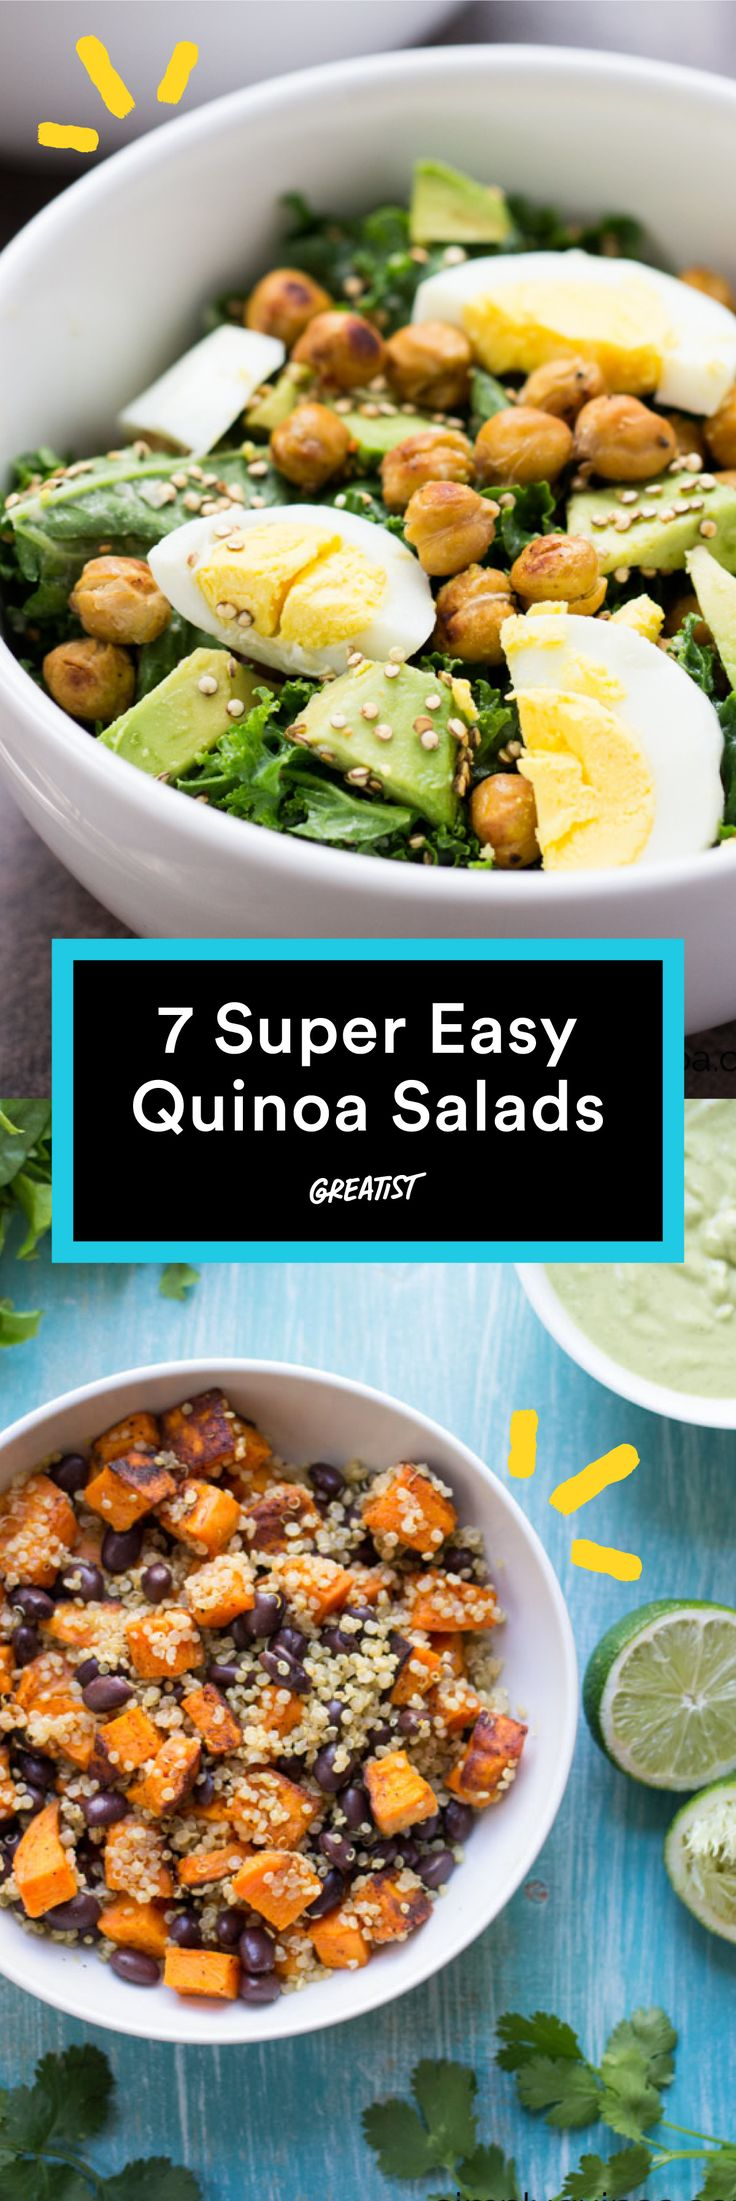 It doesn't get better than these bowls. #Healthy #Quinoa #Salads http://greatist.com/eat/quinoa-salads-we-cant-wait-to-dig-into